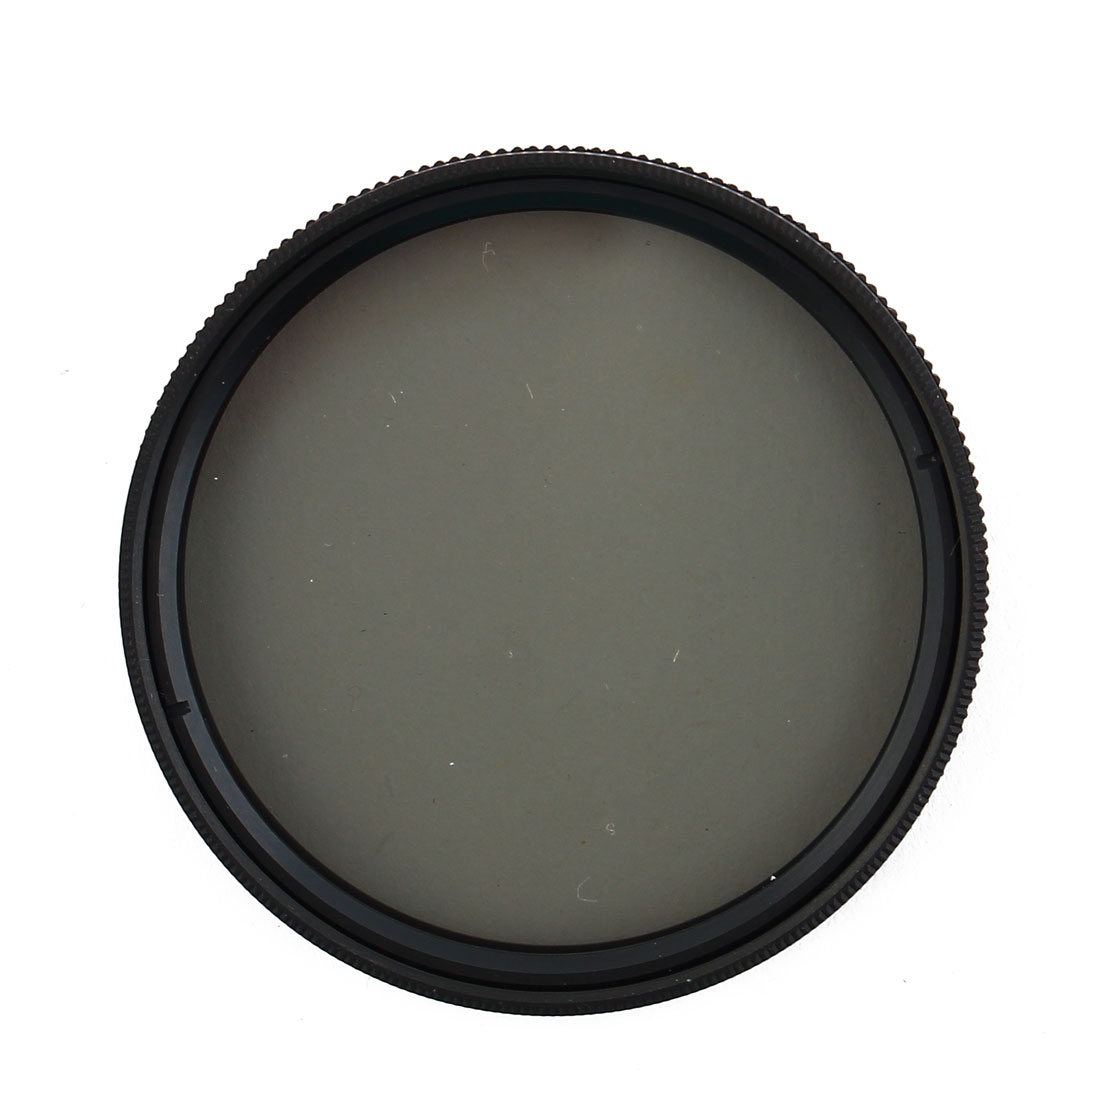 62mm Circular Polarizer CPL Lens Filter Protector for Camera - image 3 of 5